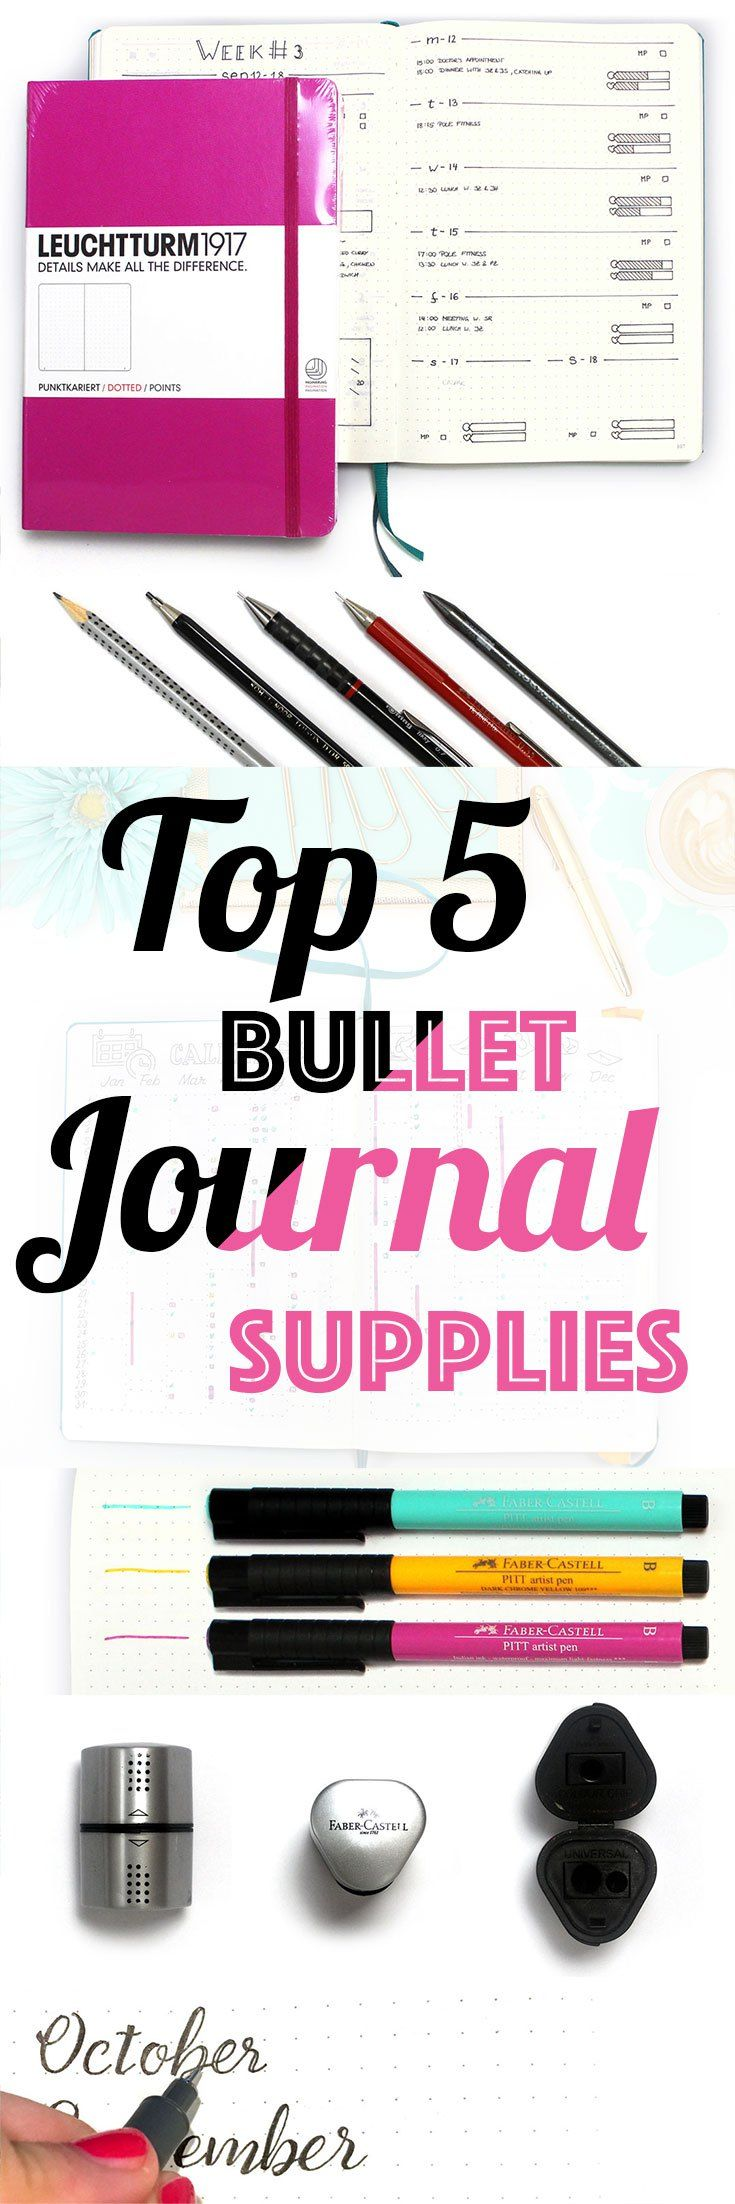 With those Top 5 Bullet Journal Supplies & armed with your creative mind, you can create the most wonderful bullet journal there is!